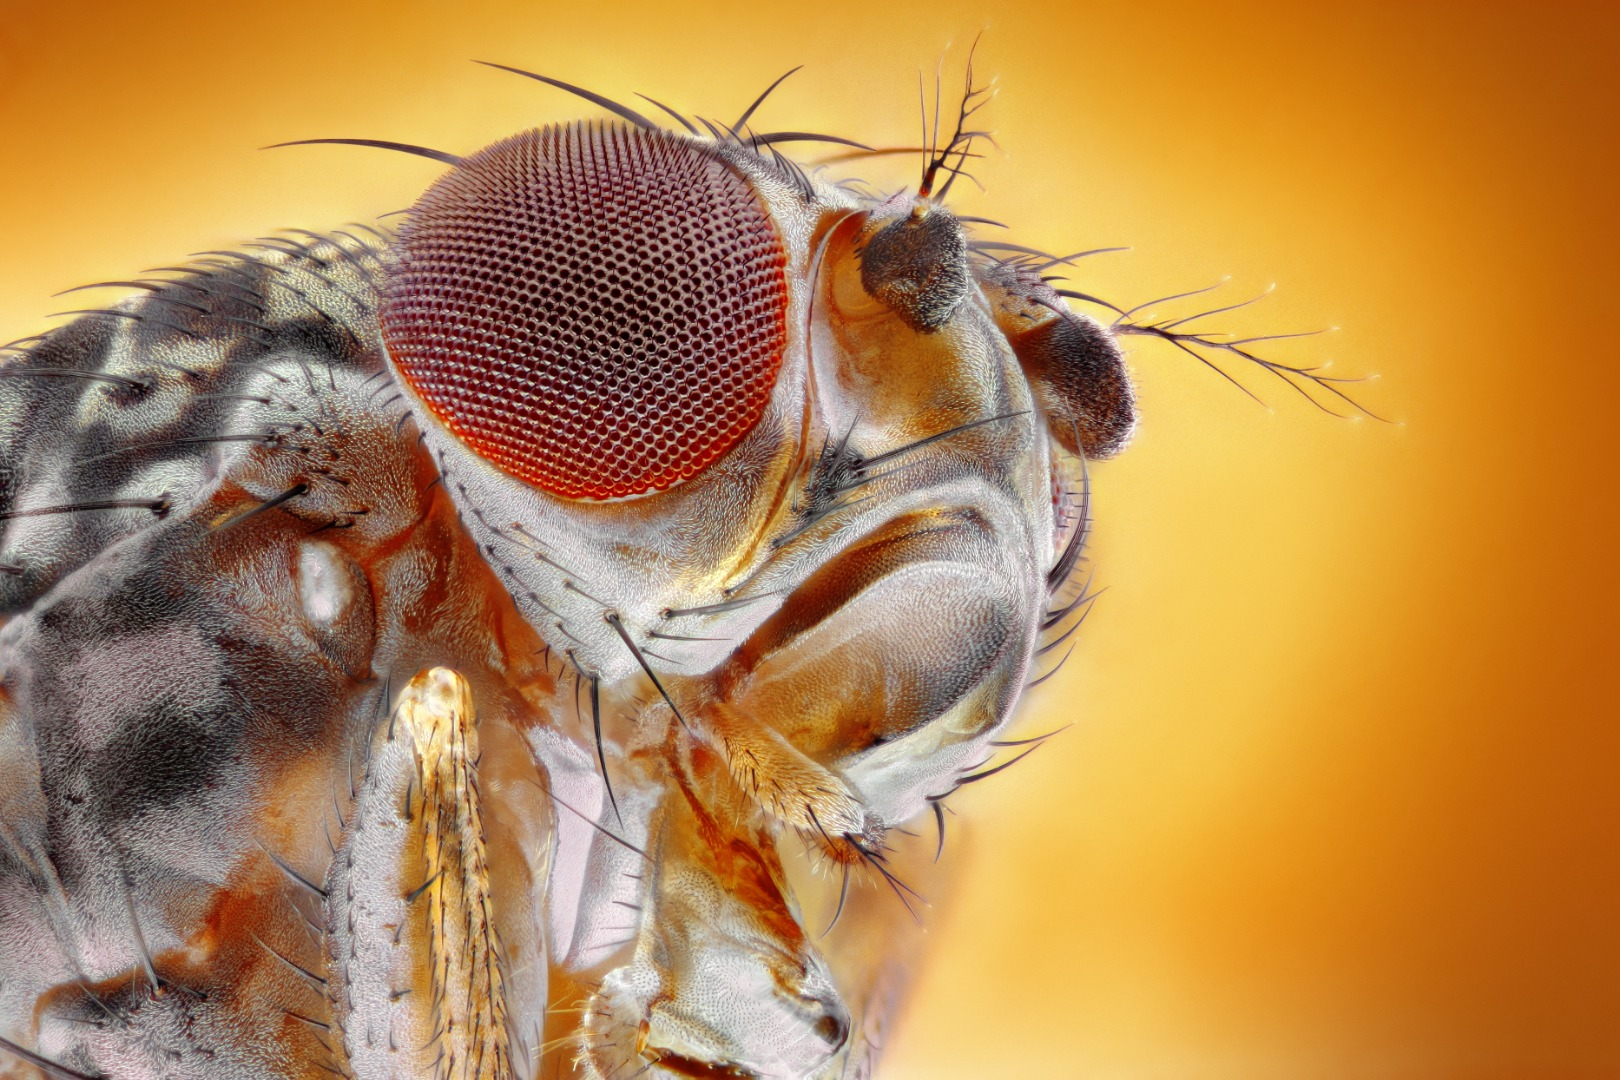 First evidence of chronic pain in insects points to a root cause in humans